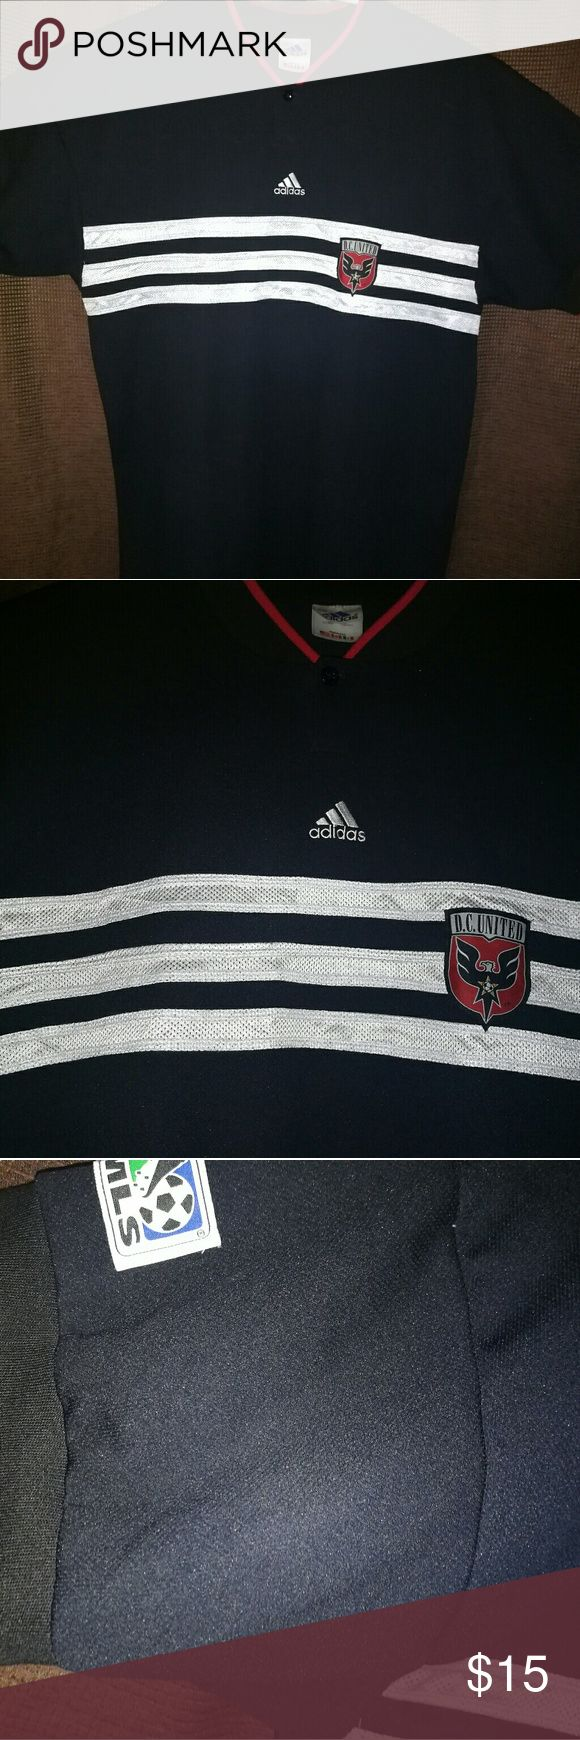 2XL-Adidas S/S DC United MLS. No-Collar 1-button Official DC United MLS Fan Shirt. Used but loved shirt.No stains or rips.Feels great. All offers will be considered. Please post any questions or comments.Will reply asap. Adidas Shirts Polos